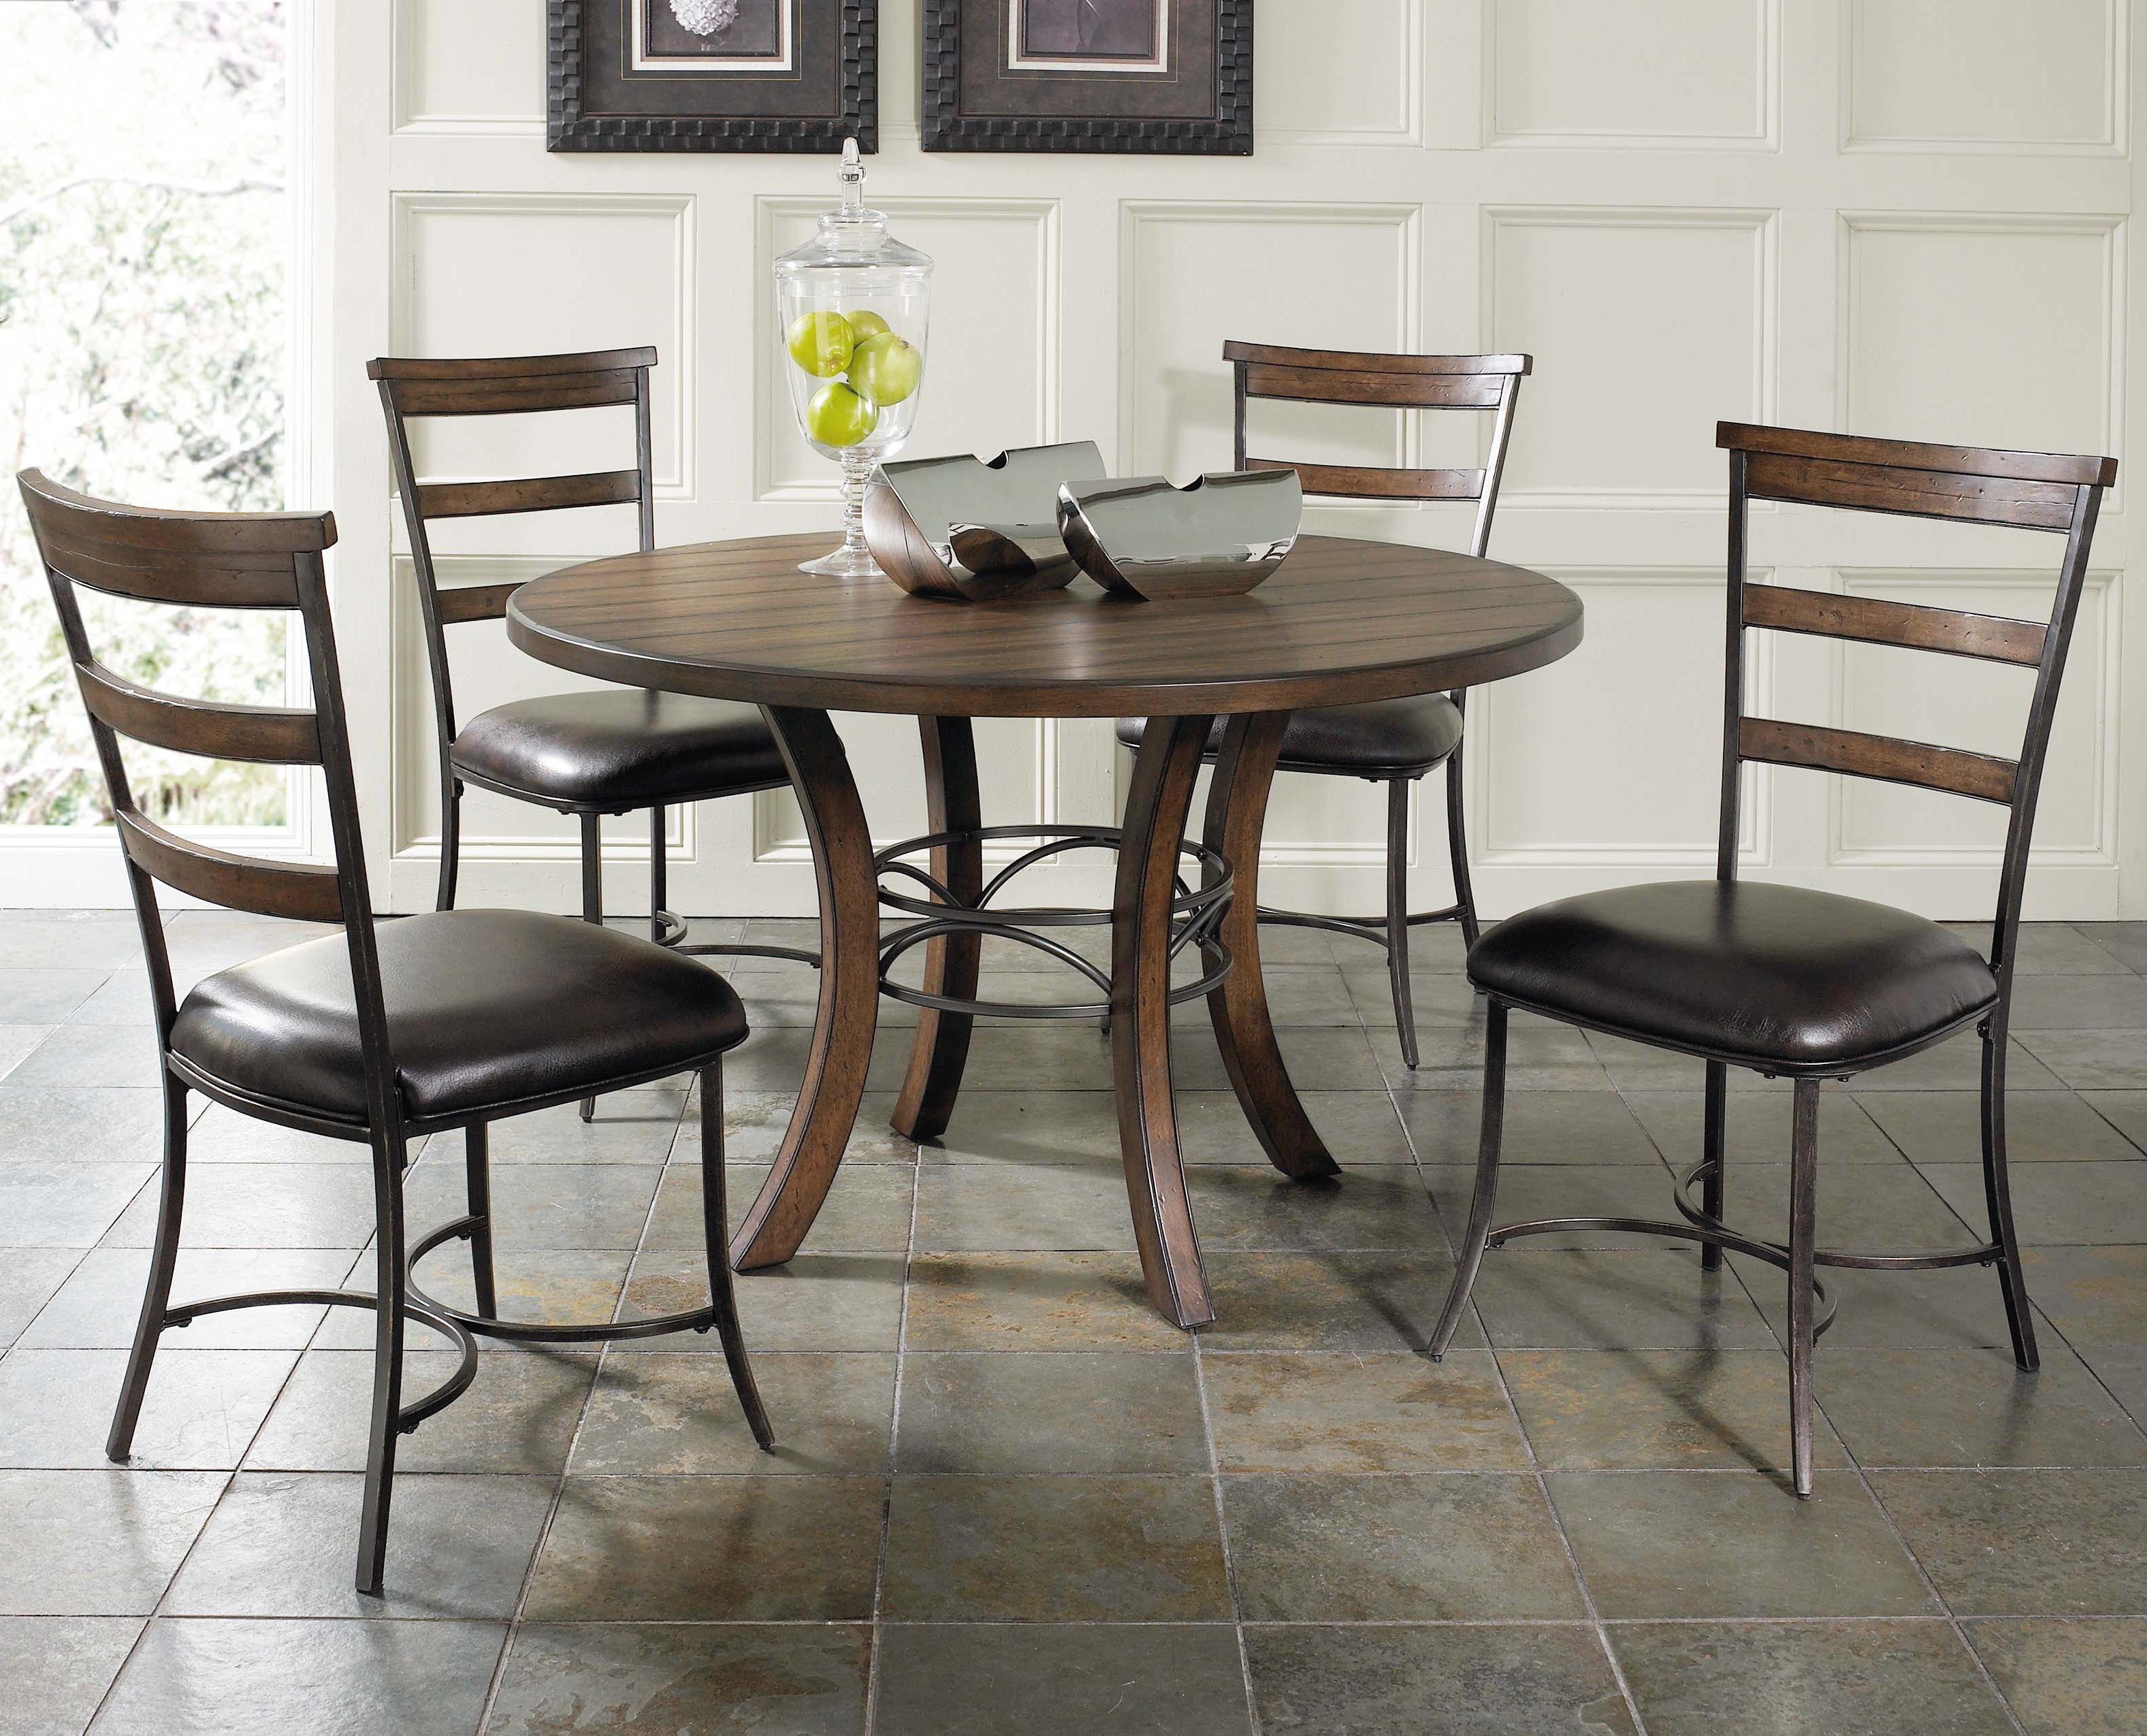 round dining chairs skovby chair wood table with metal acent base by hillsdale